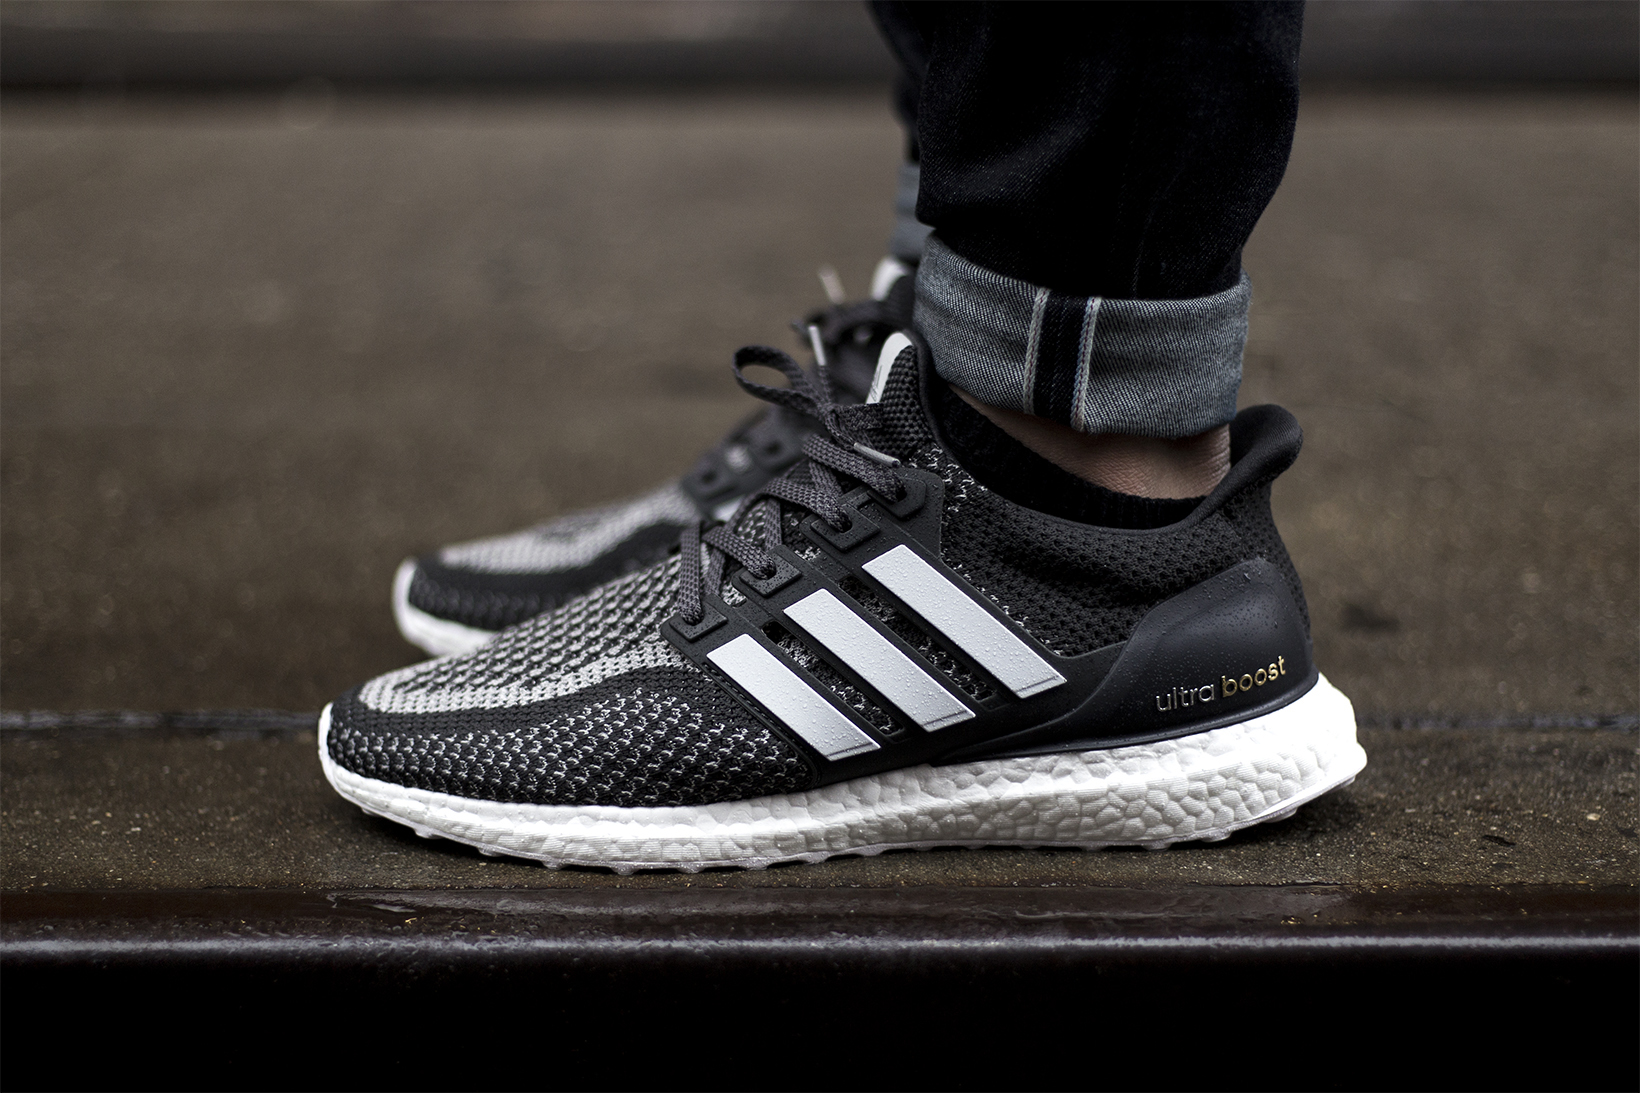 mi adidas ultraboost nyc exclusive closer look hypebeast. Black Bedroom Furniture Sets. Home Design Ideas